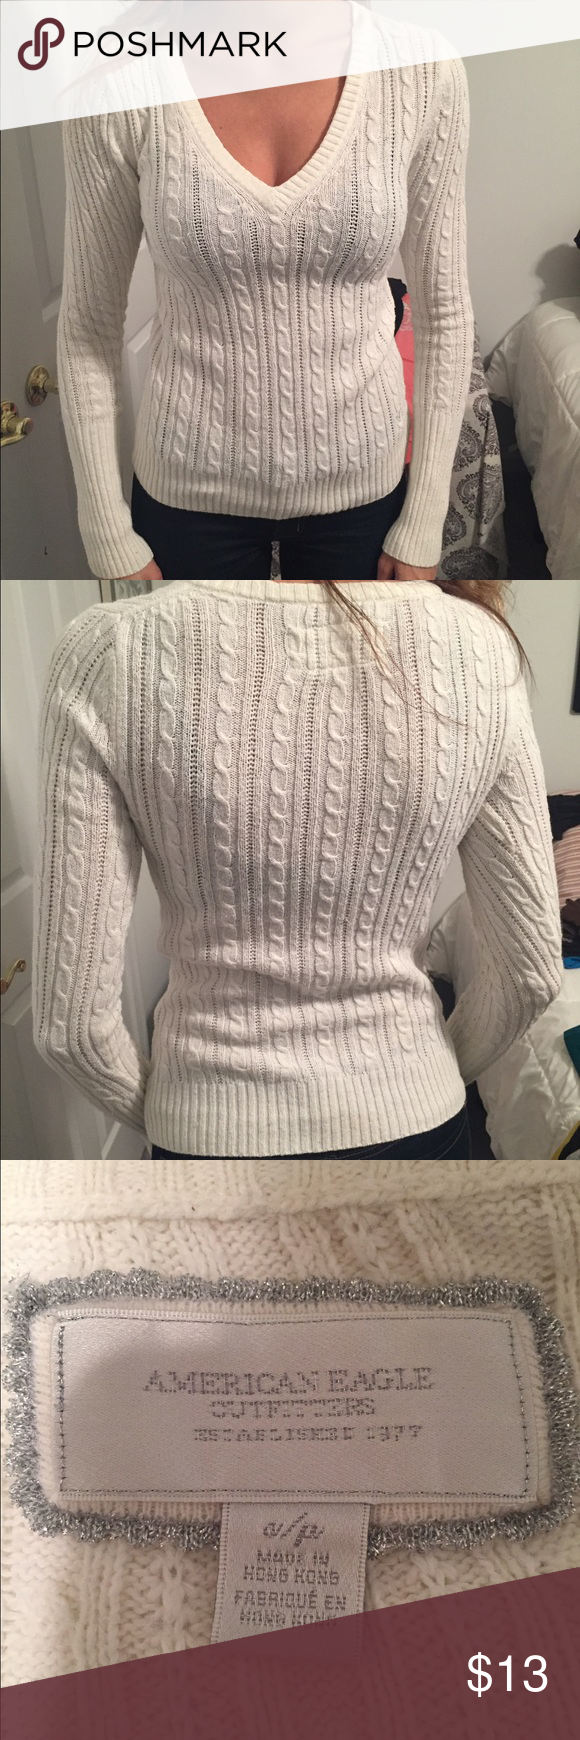 American Eagle Sweater Ivory American Eagle Sweater.  Size Small. Great Condition American Eagle Outfitters Sweaters V-Necks